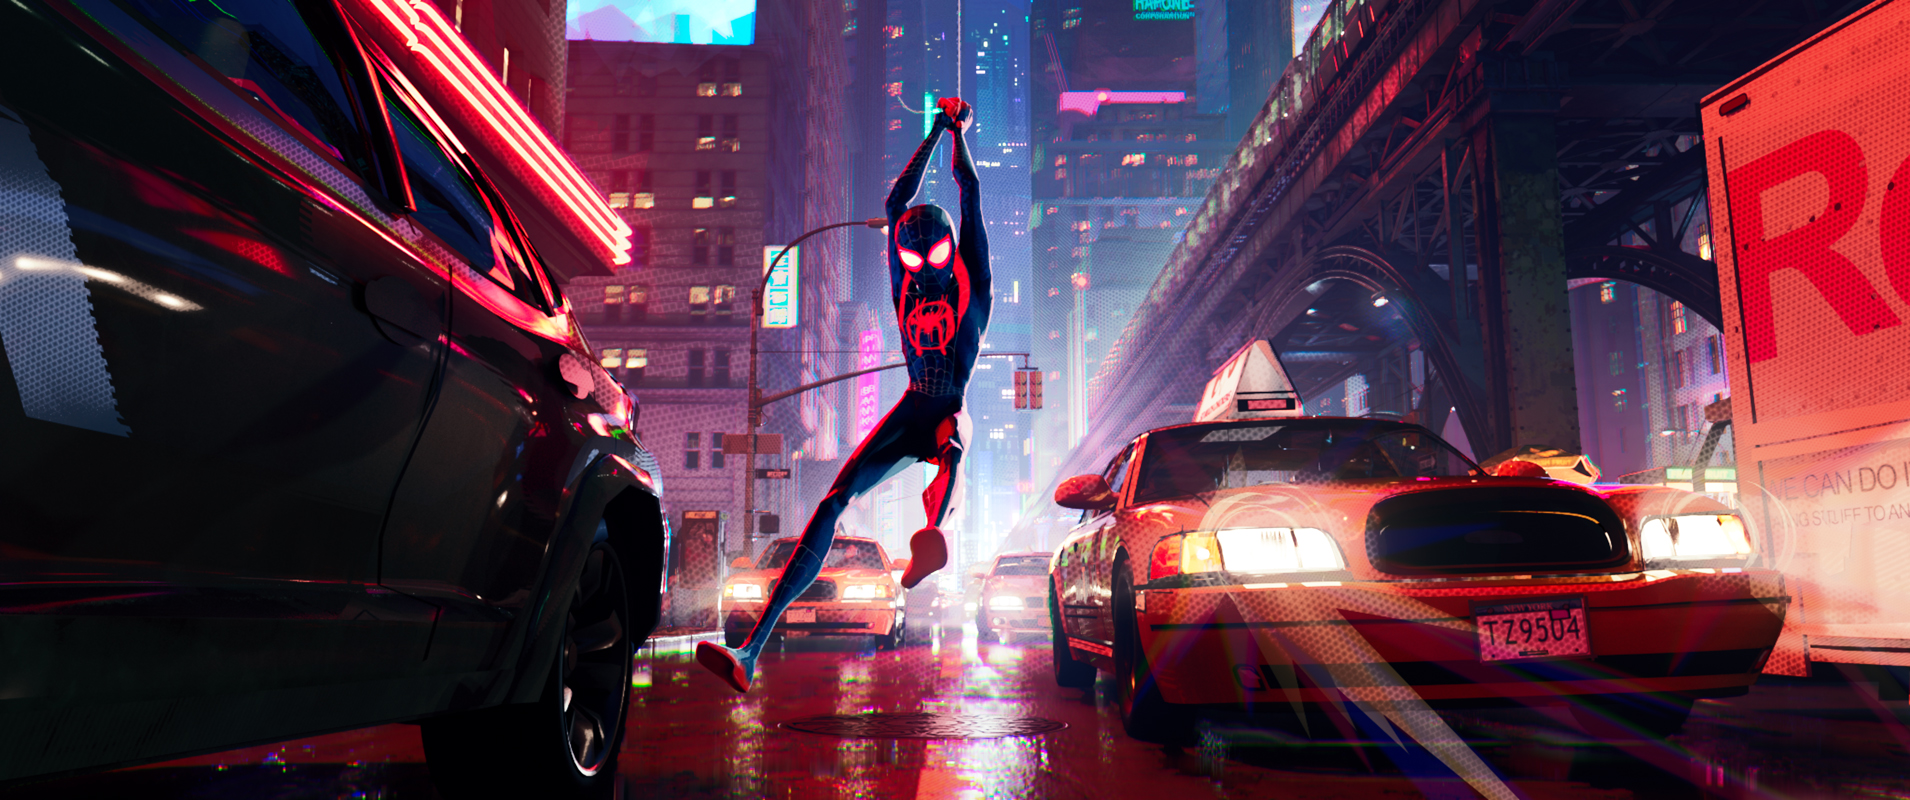 ART OF THE CUT on editing Spider-Man: Into the Spider-Verse 4